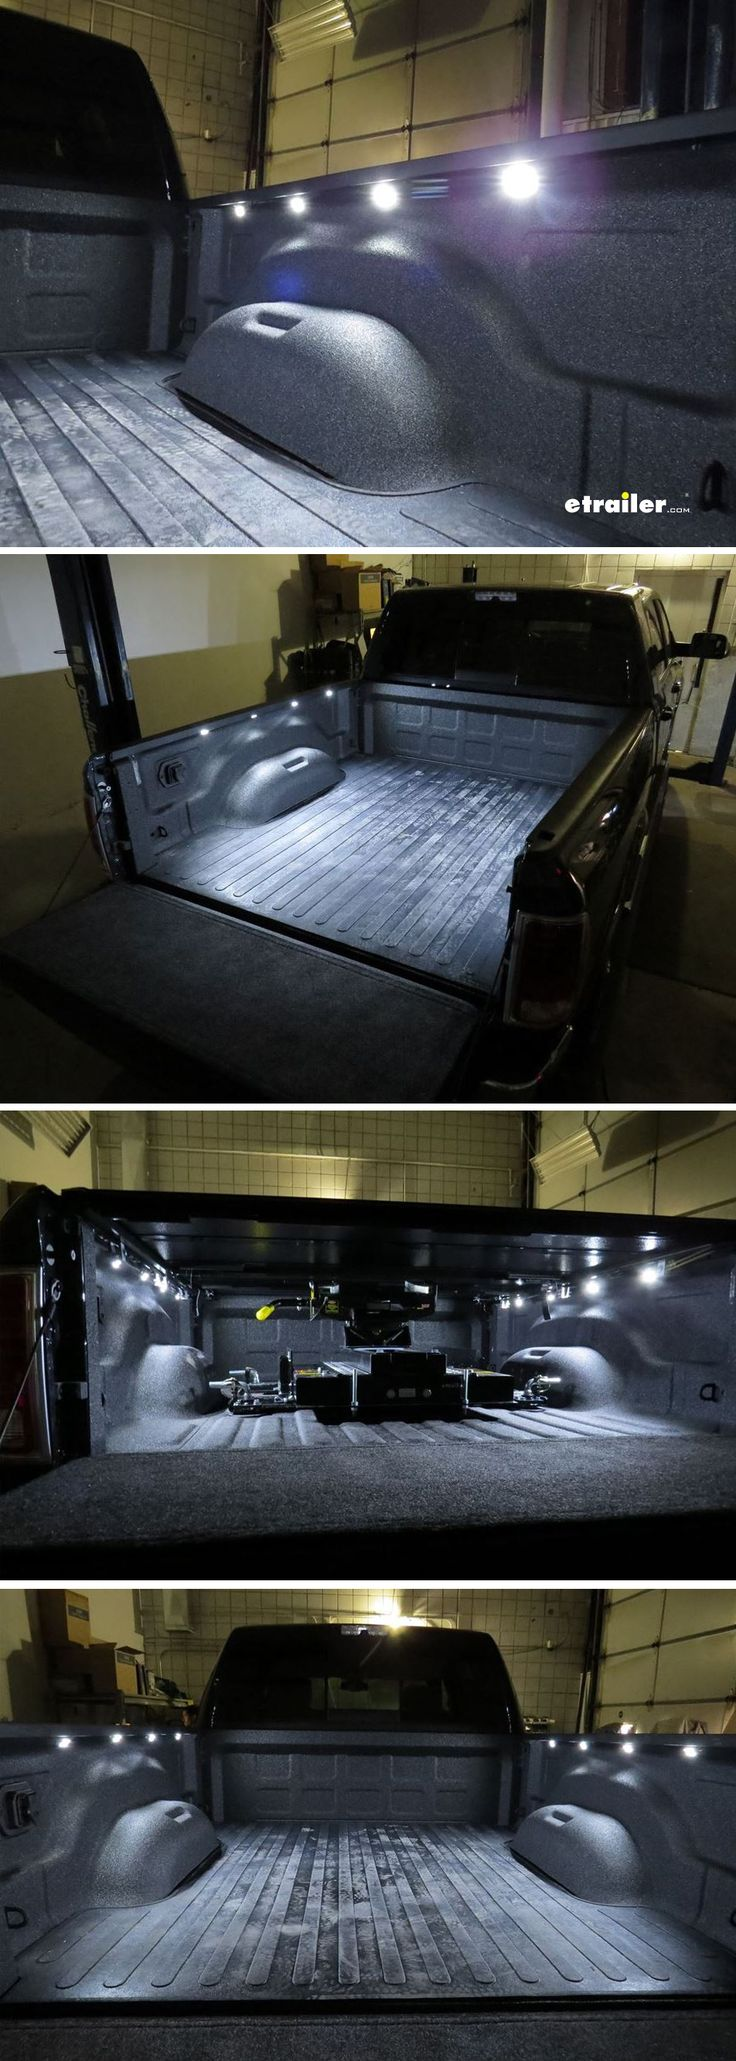 Illuminate your truck bed with this B-Light system. The LEDs install safely under your truck bed rails in 30 minutes, and they're compatible with all truck makes and models and all tonneau cover styles.